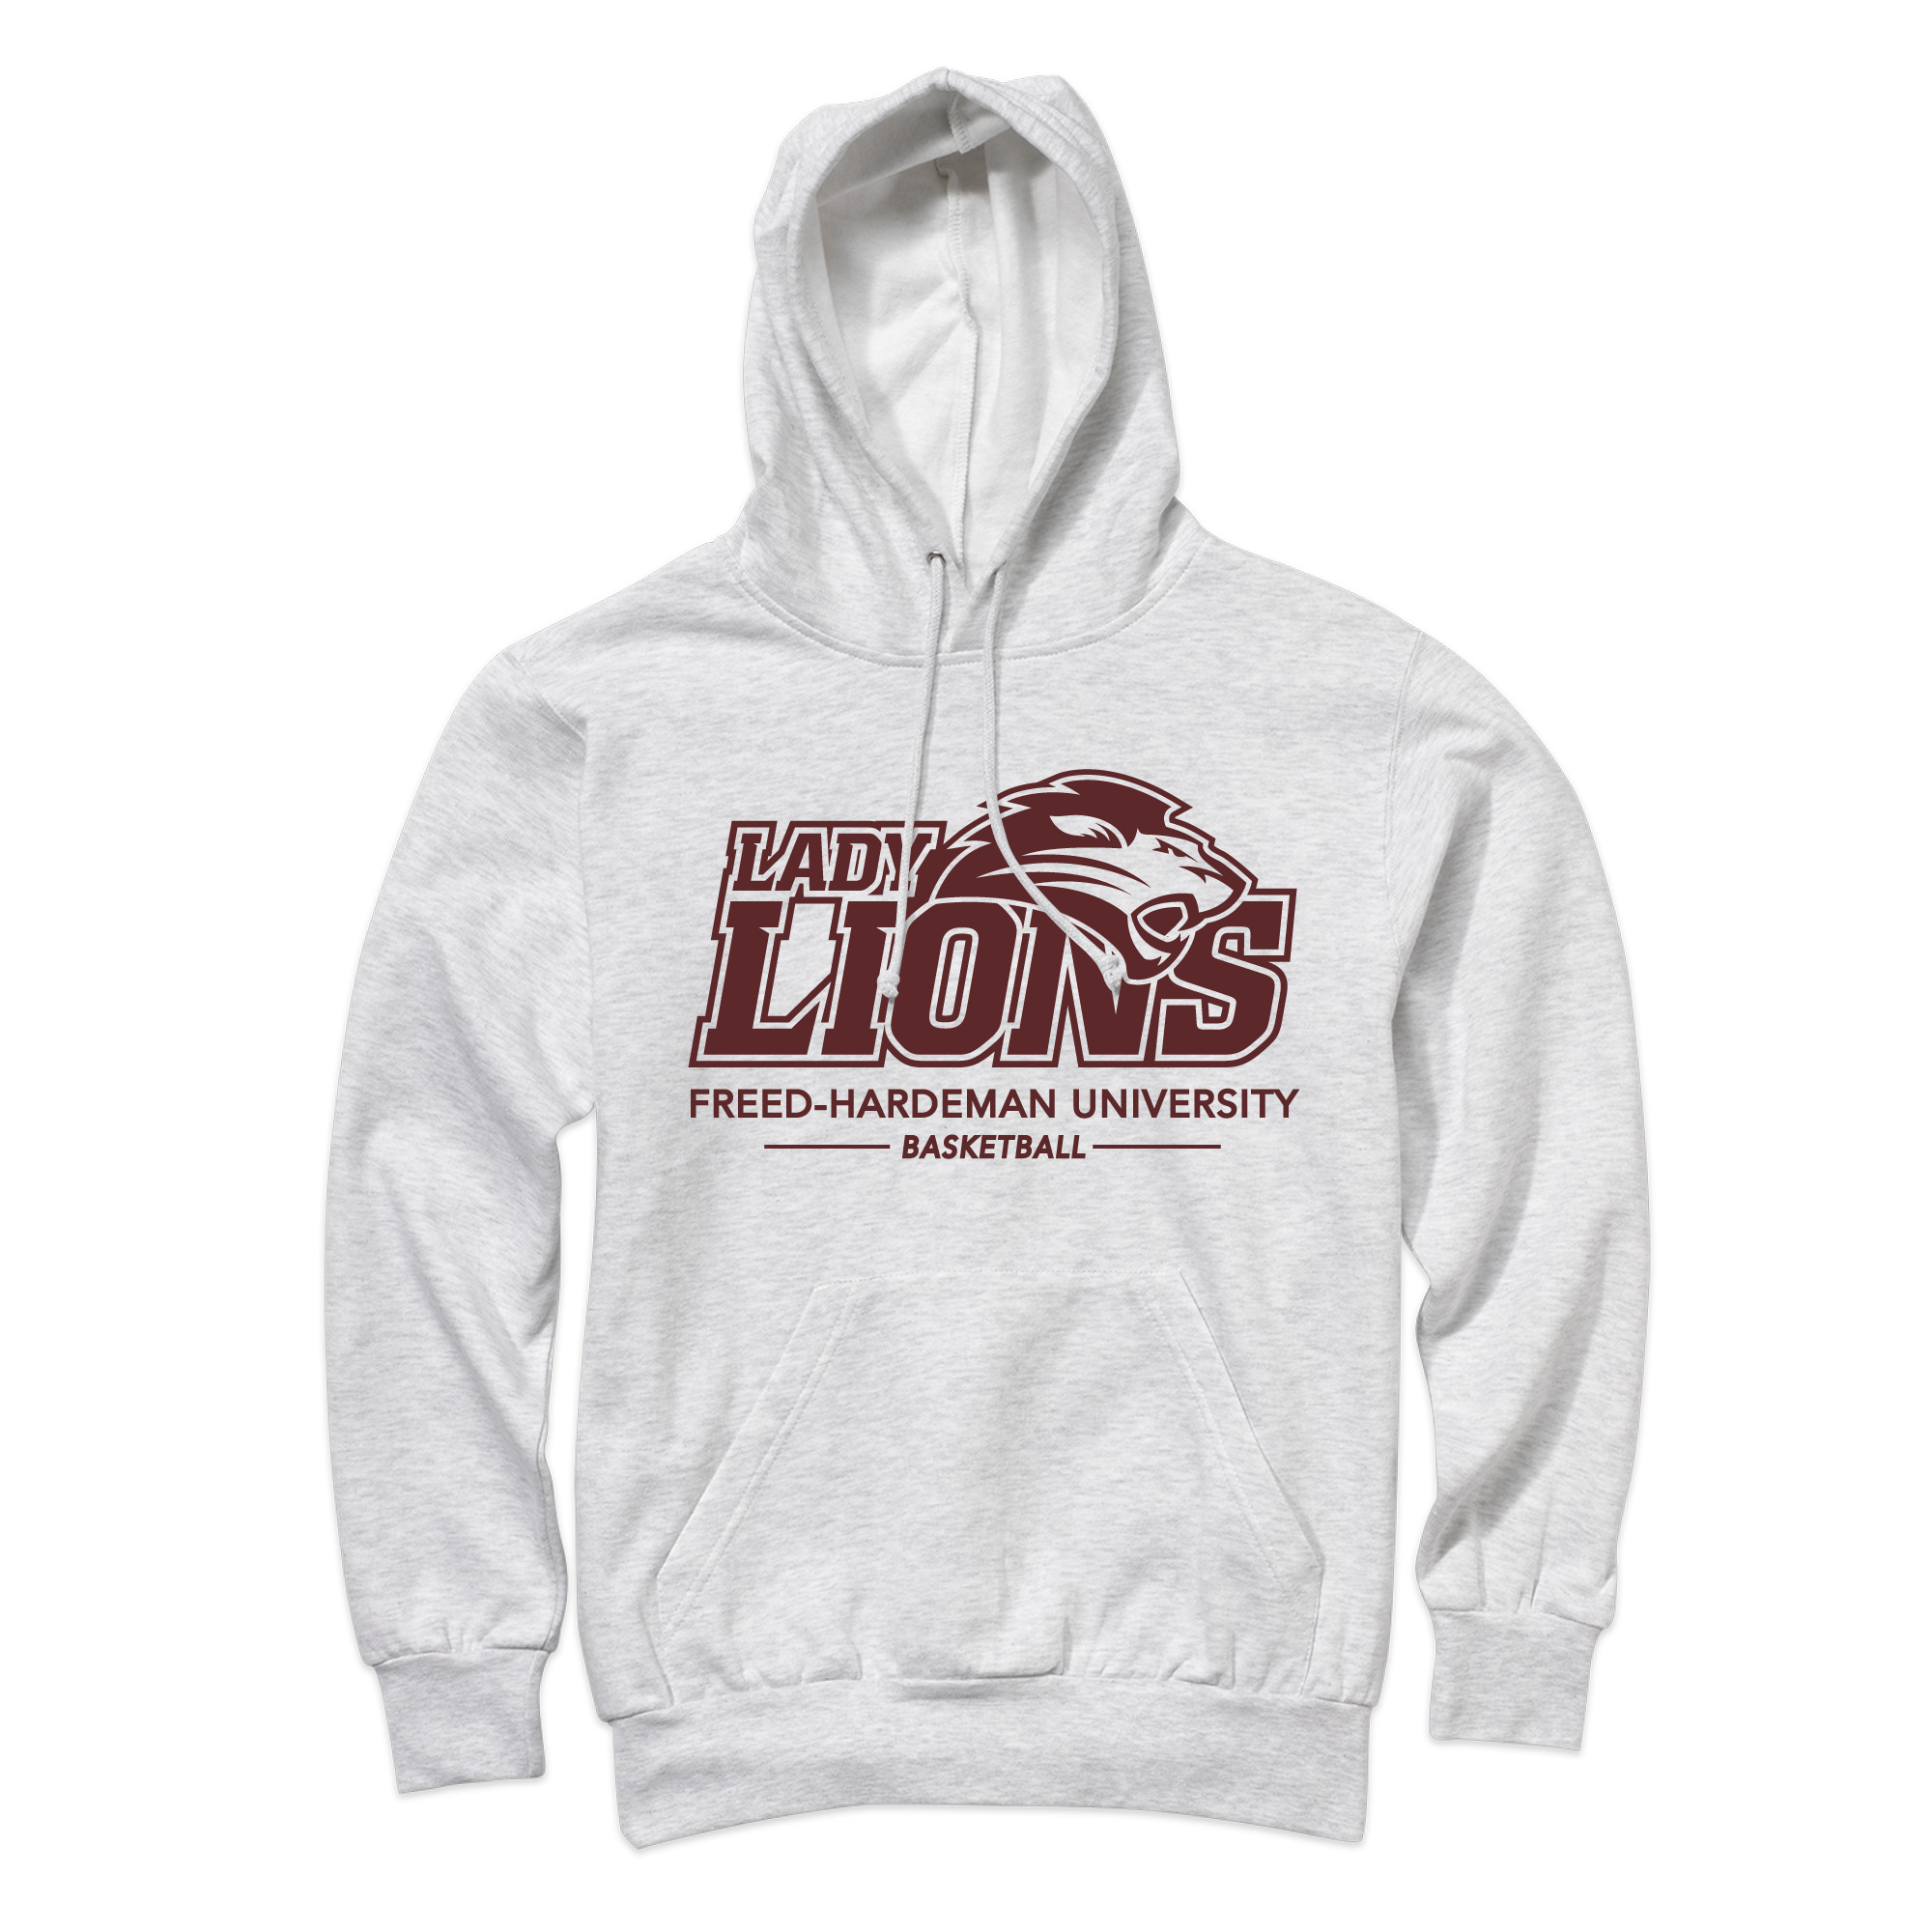 Lady Lions Basketball Hoodie - XXL